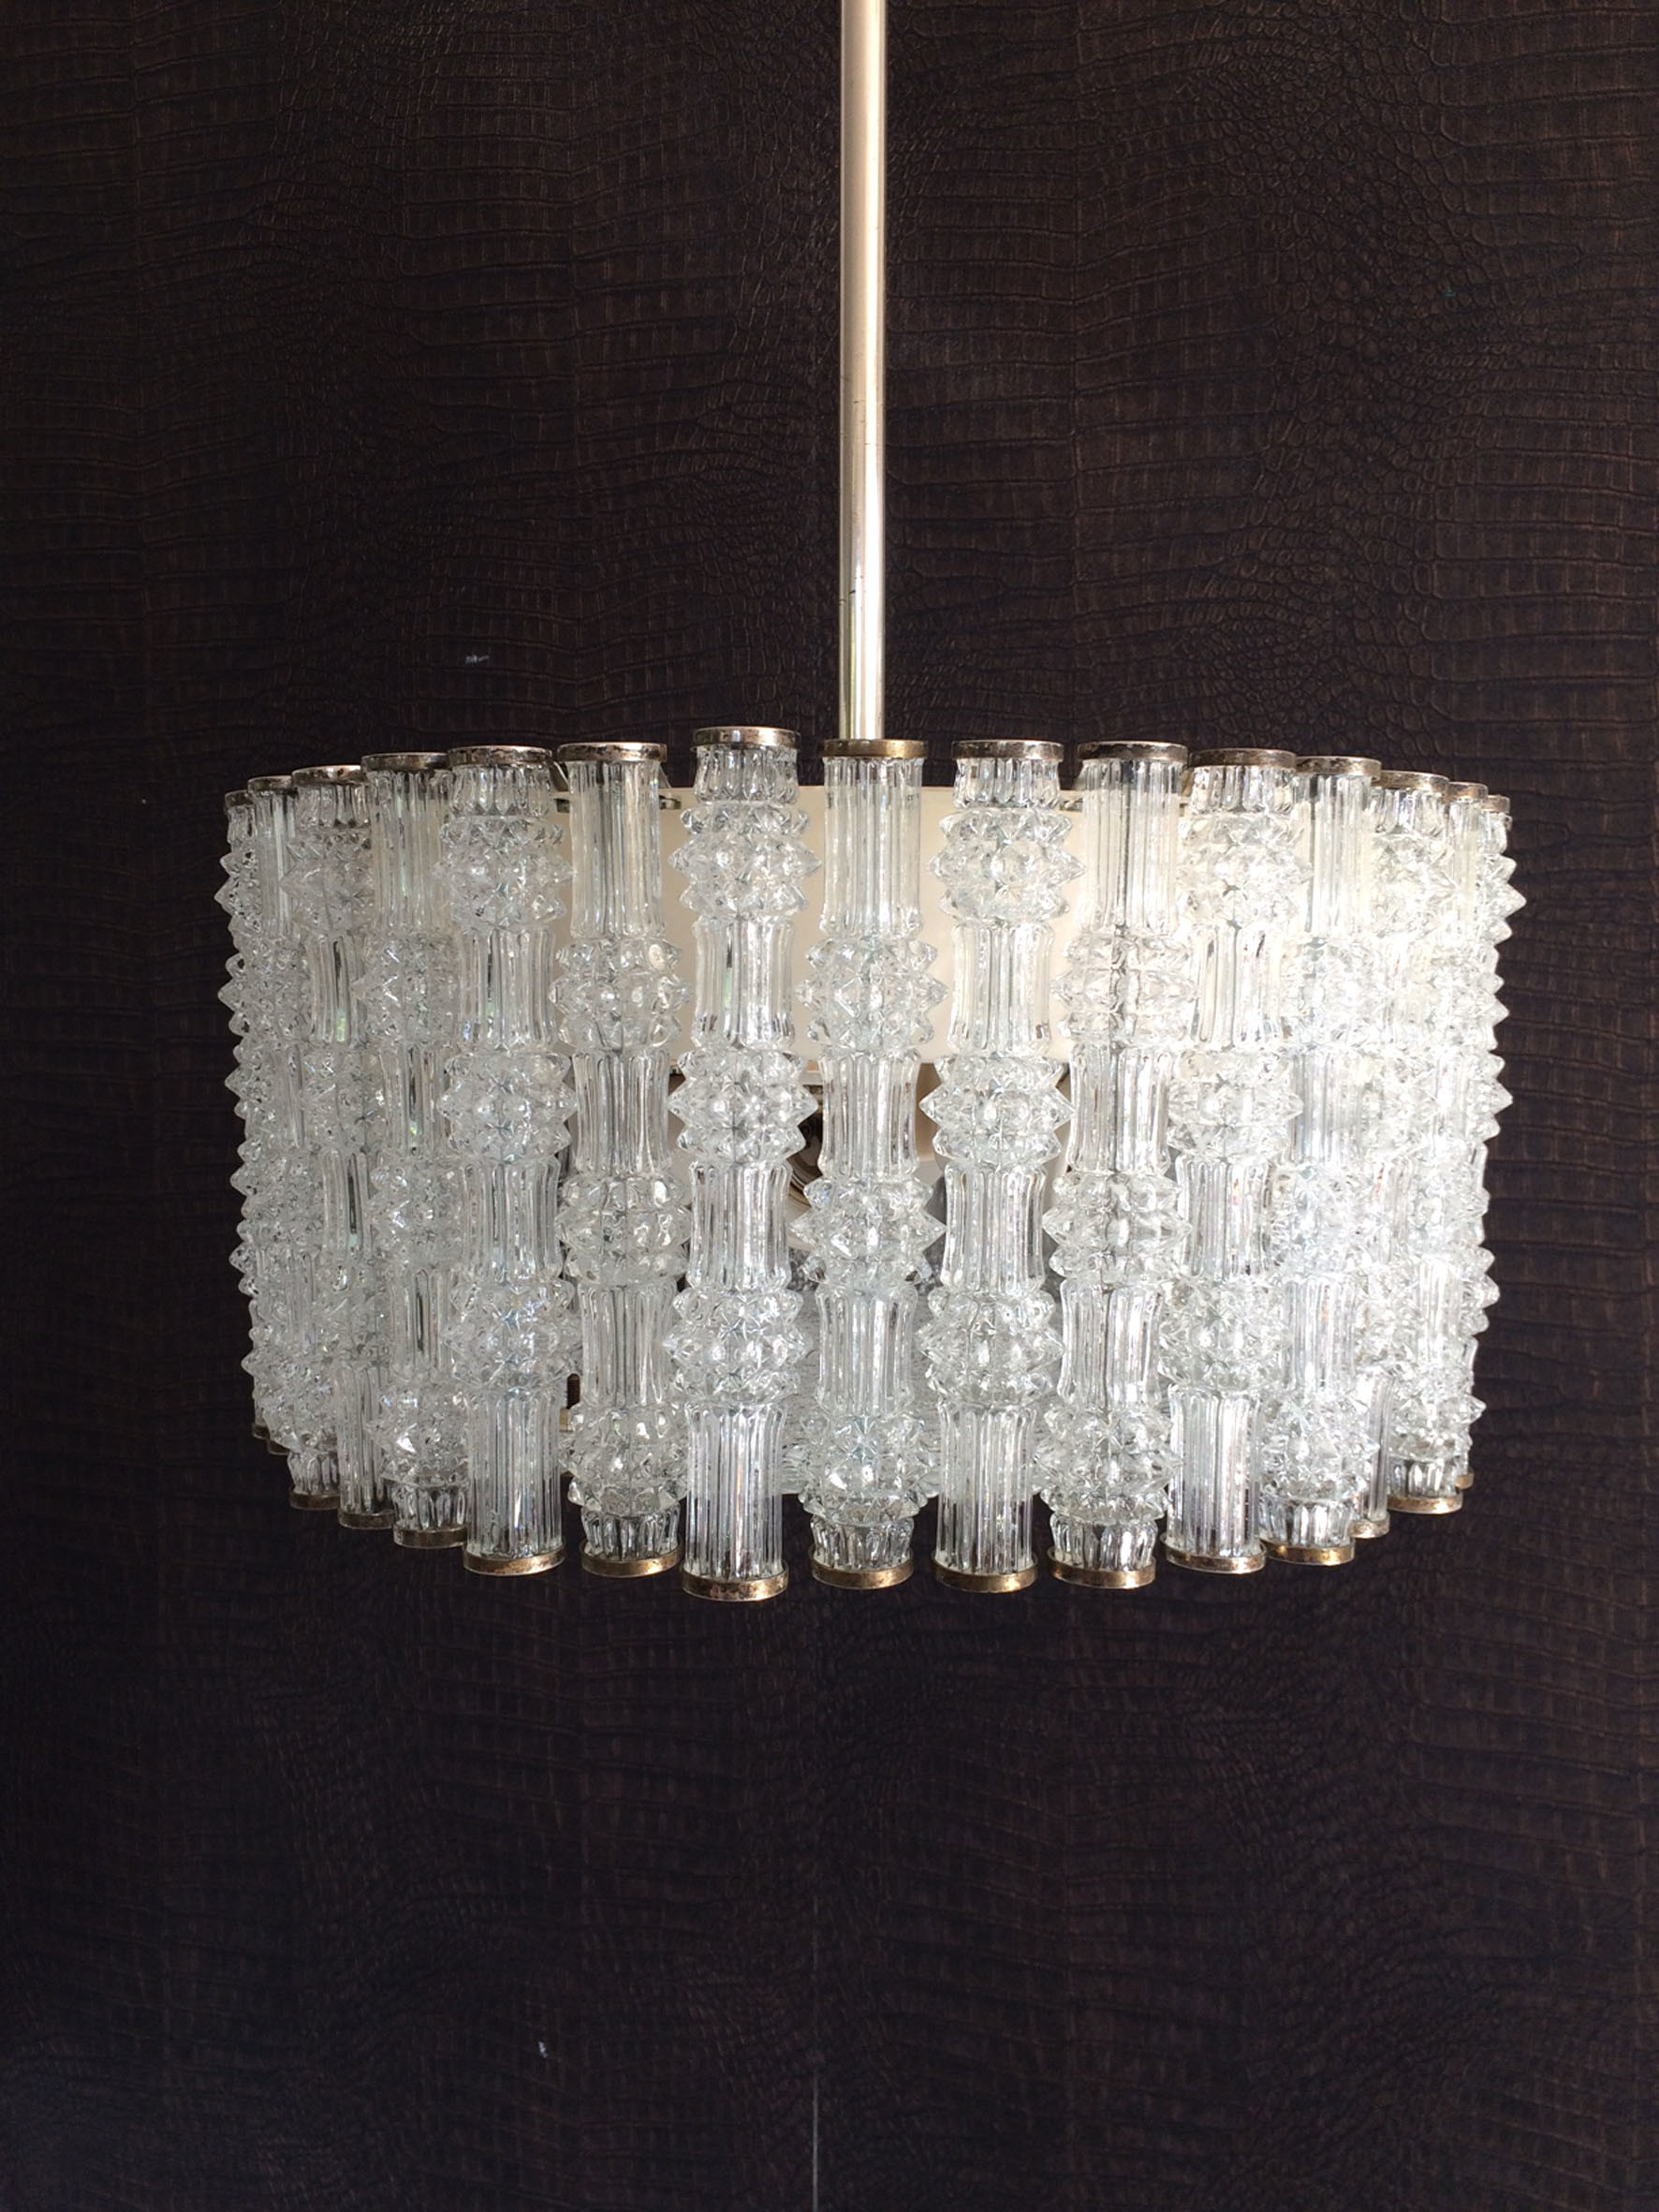 Leuchten Kaiser Https://www.vinterior.co/lighting/ceiling-lights/pendants/1950-s-kaiser-leuchten-design-primat-ice-texture-crystal-drum-chandelier-ceiling-lamp